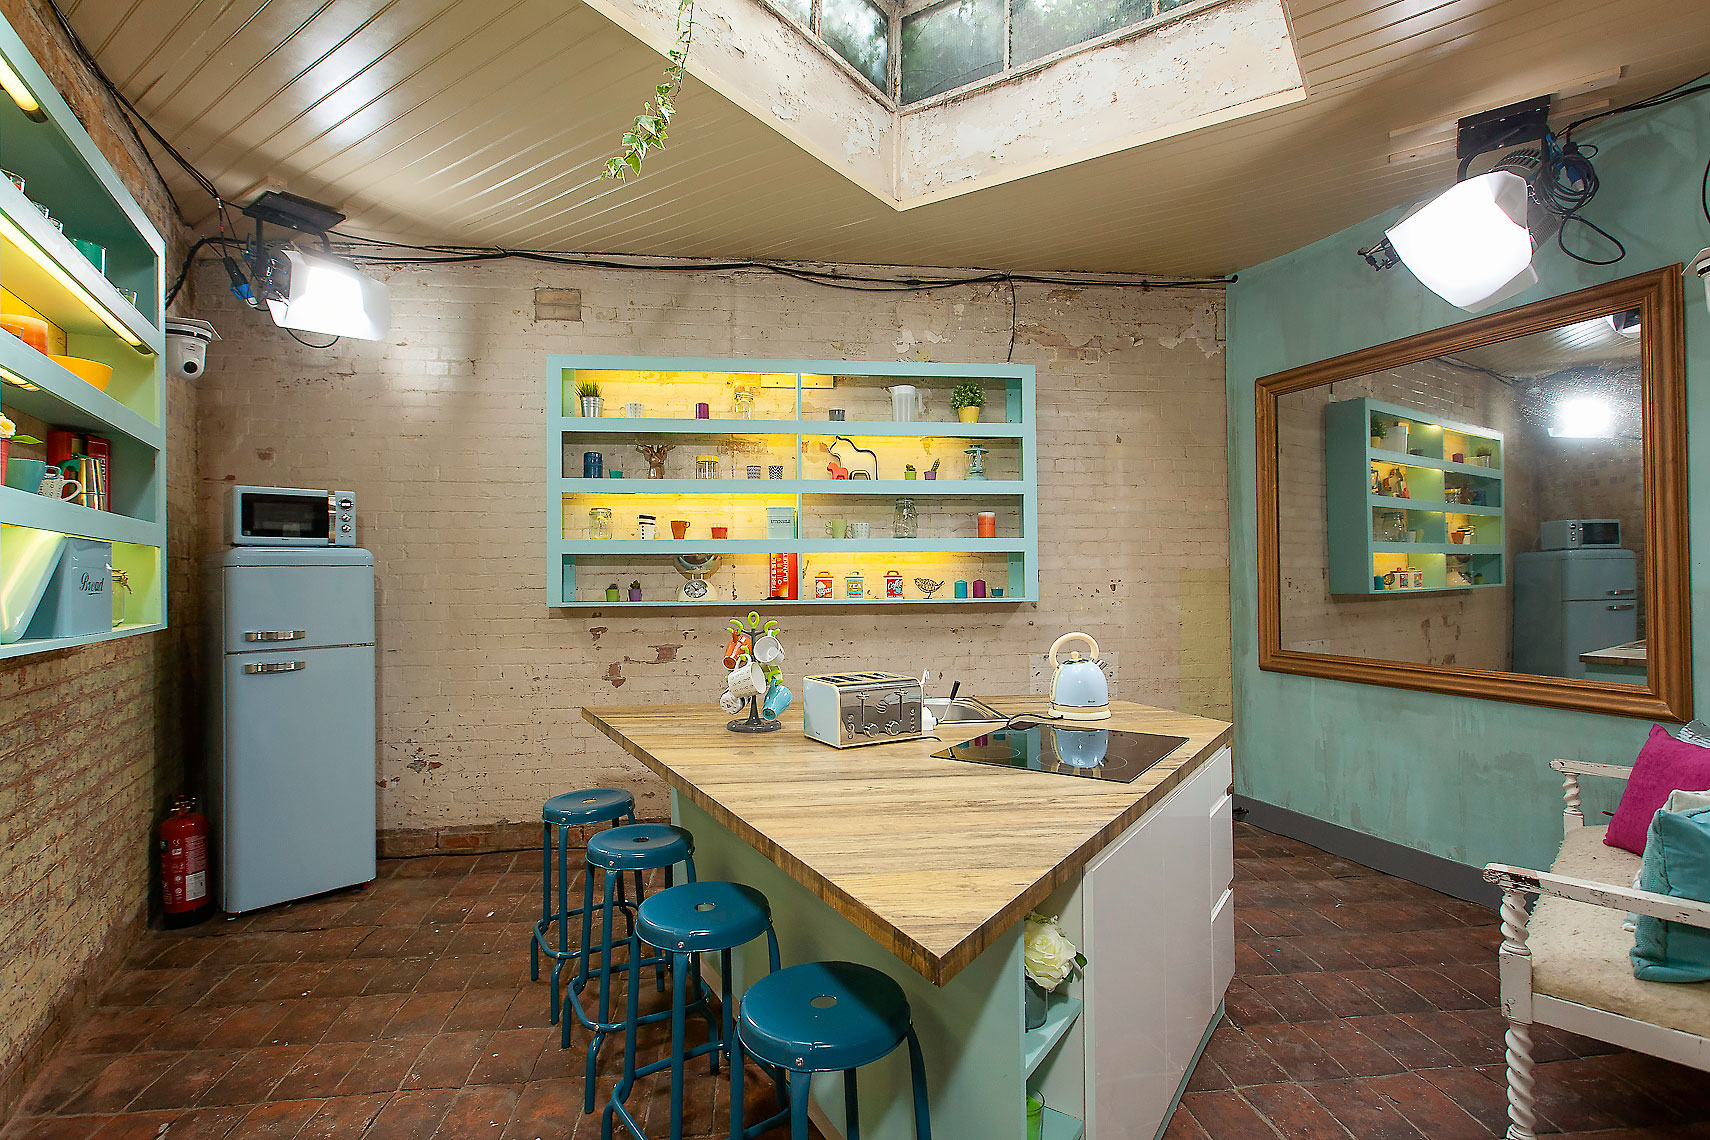 Television studio set of interior kitchen area with green walls and furnishings